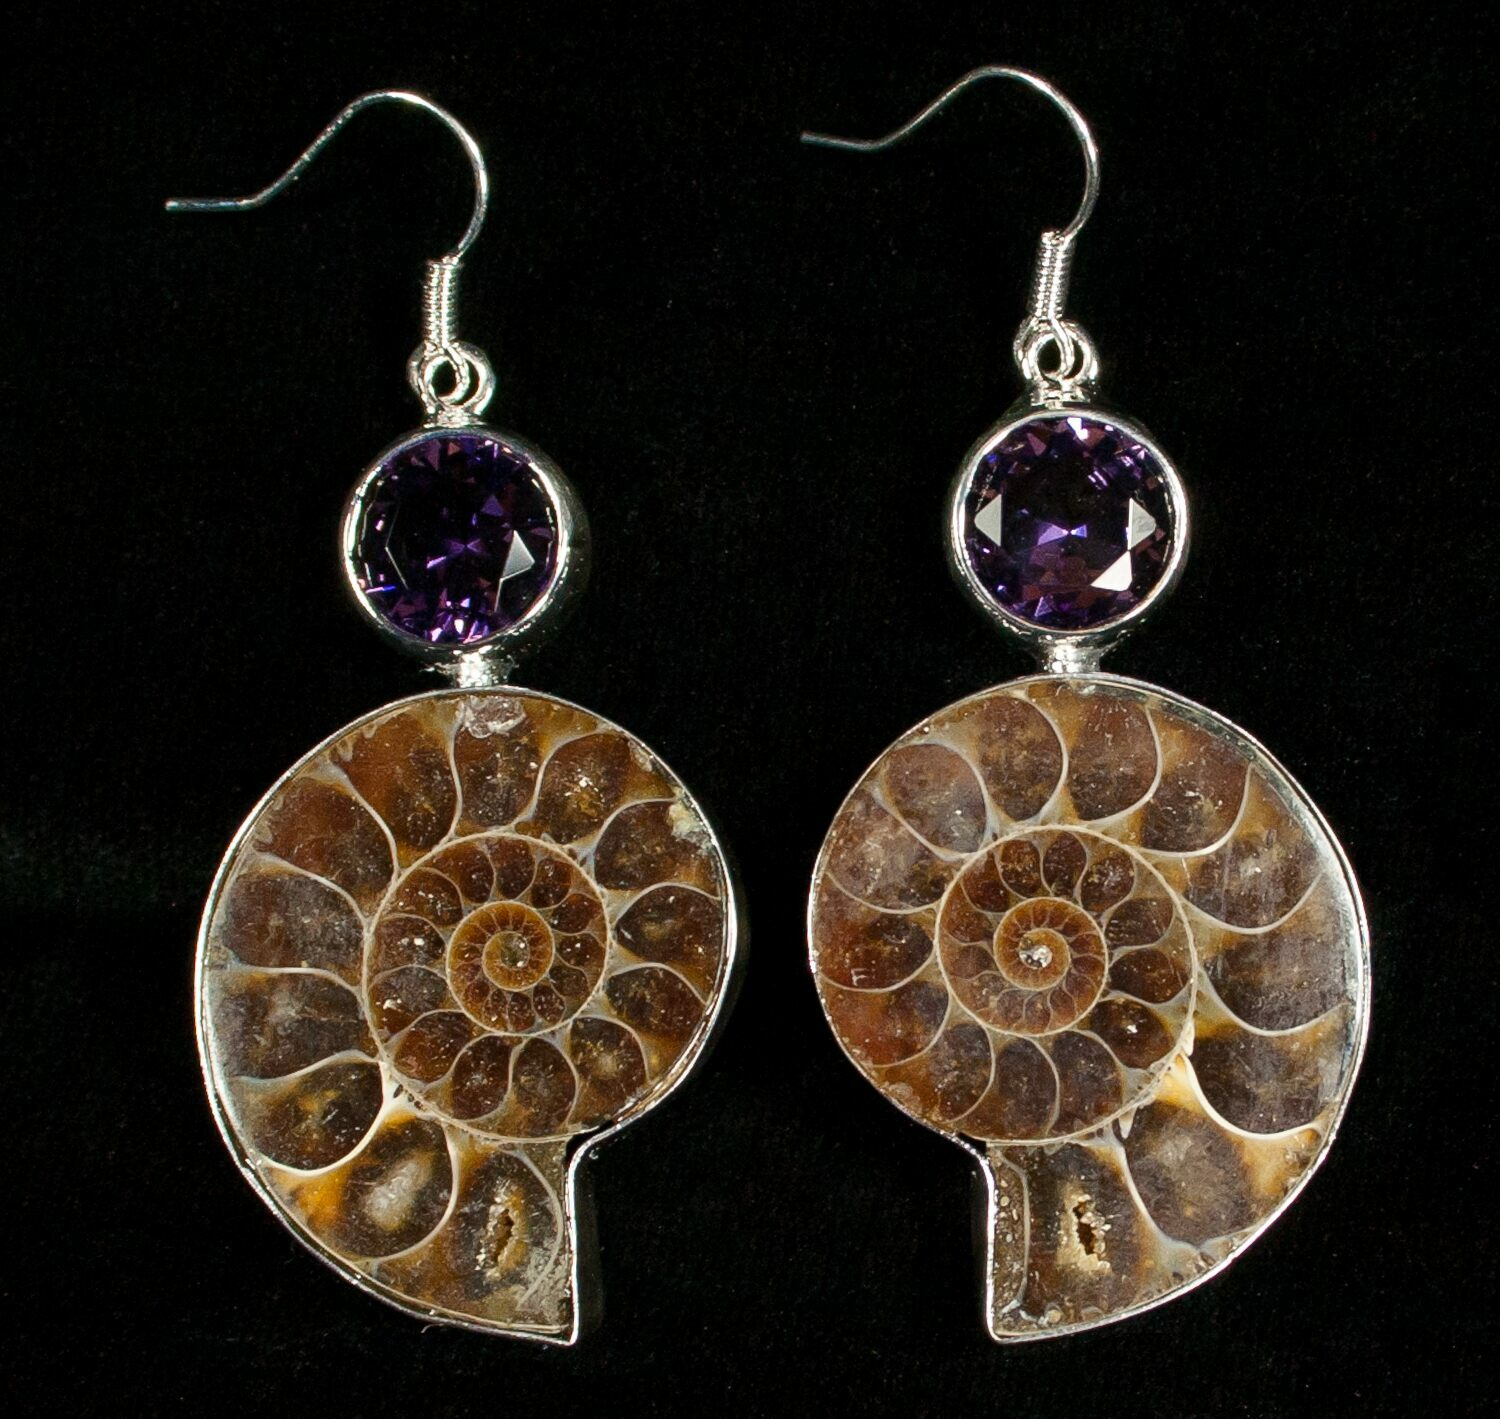 e09379429 Ammonite Earrings With Amethyst For Sale (#4515) - FossilEra.com